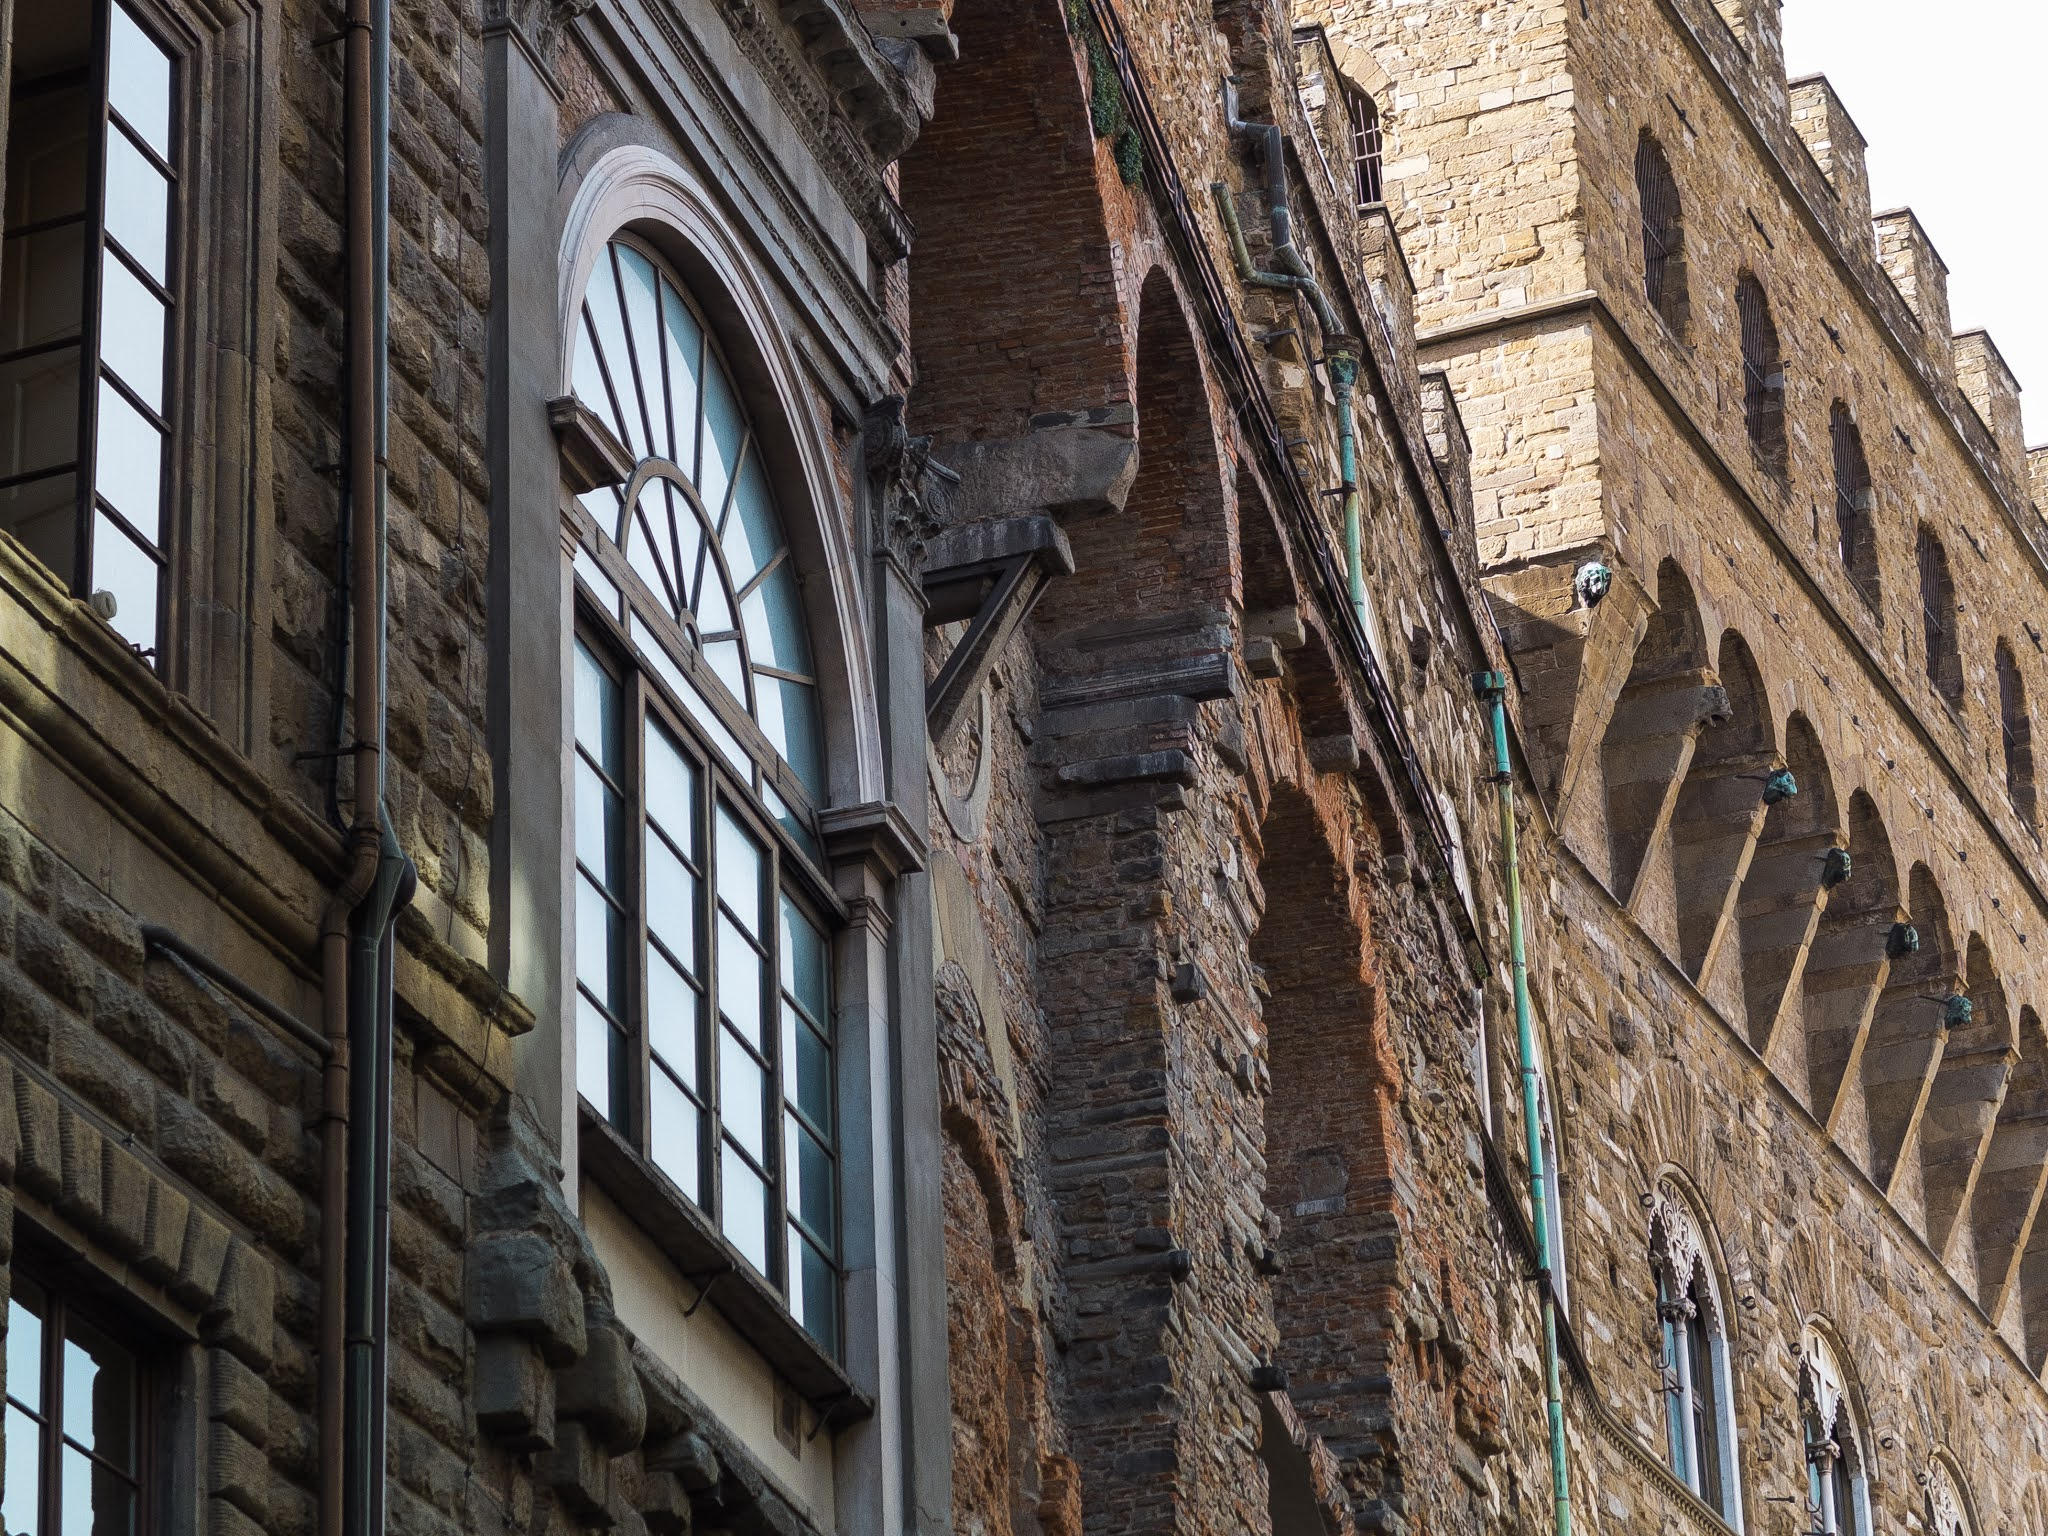 Details of the building exterior on Via dei Gondi in Florence.